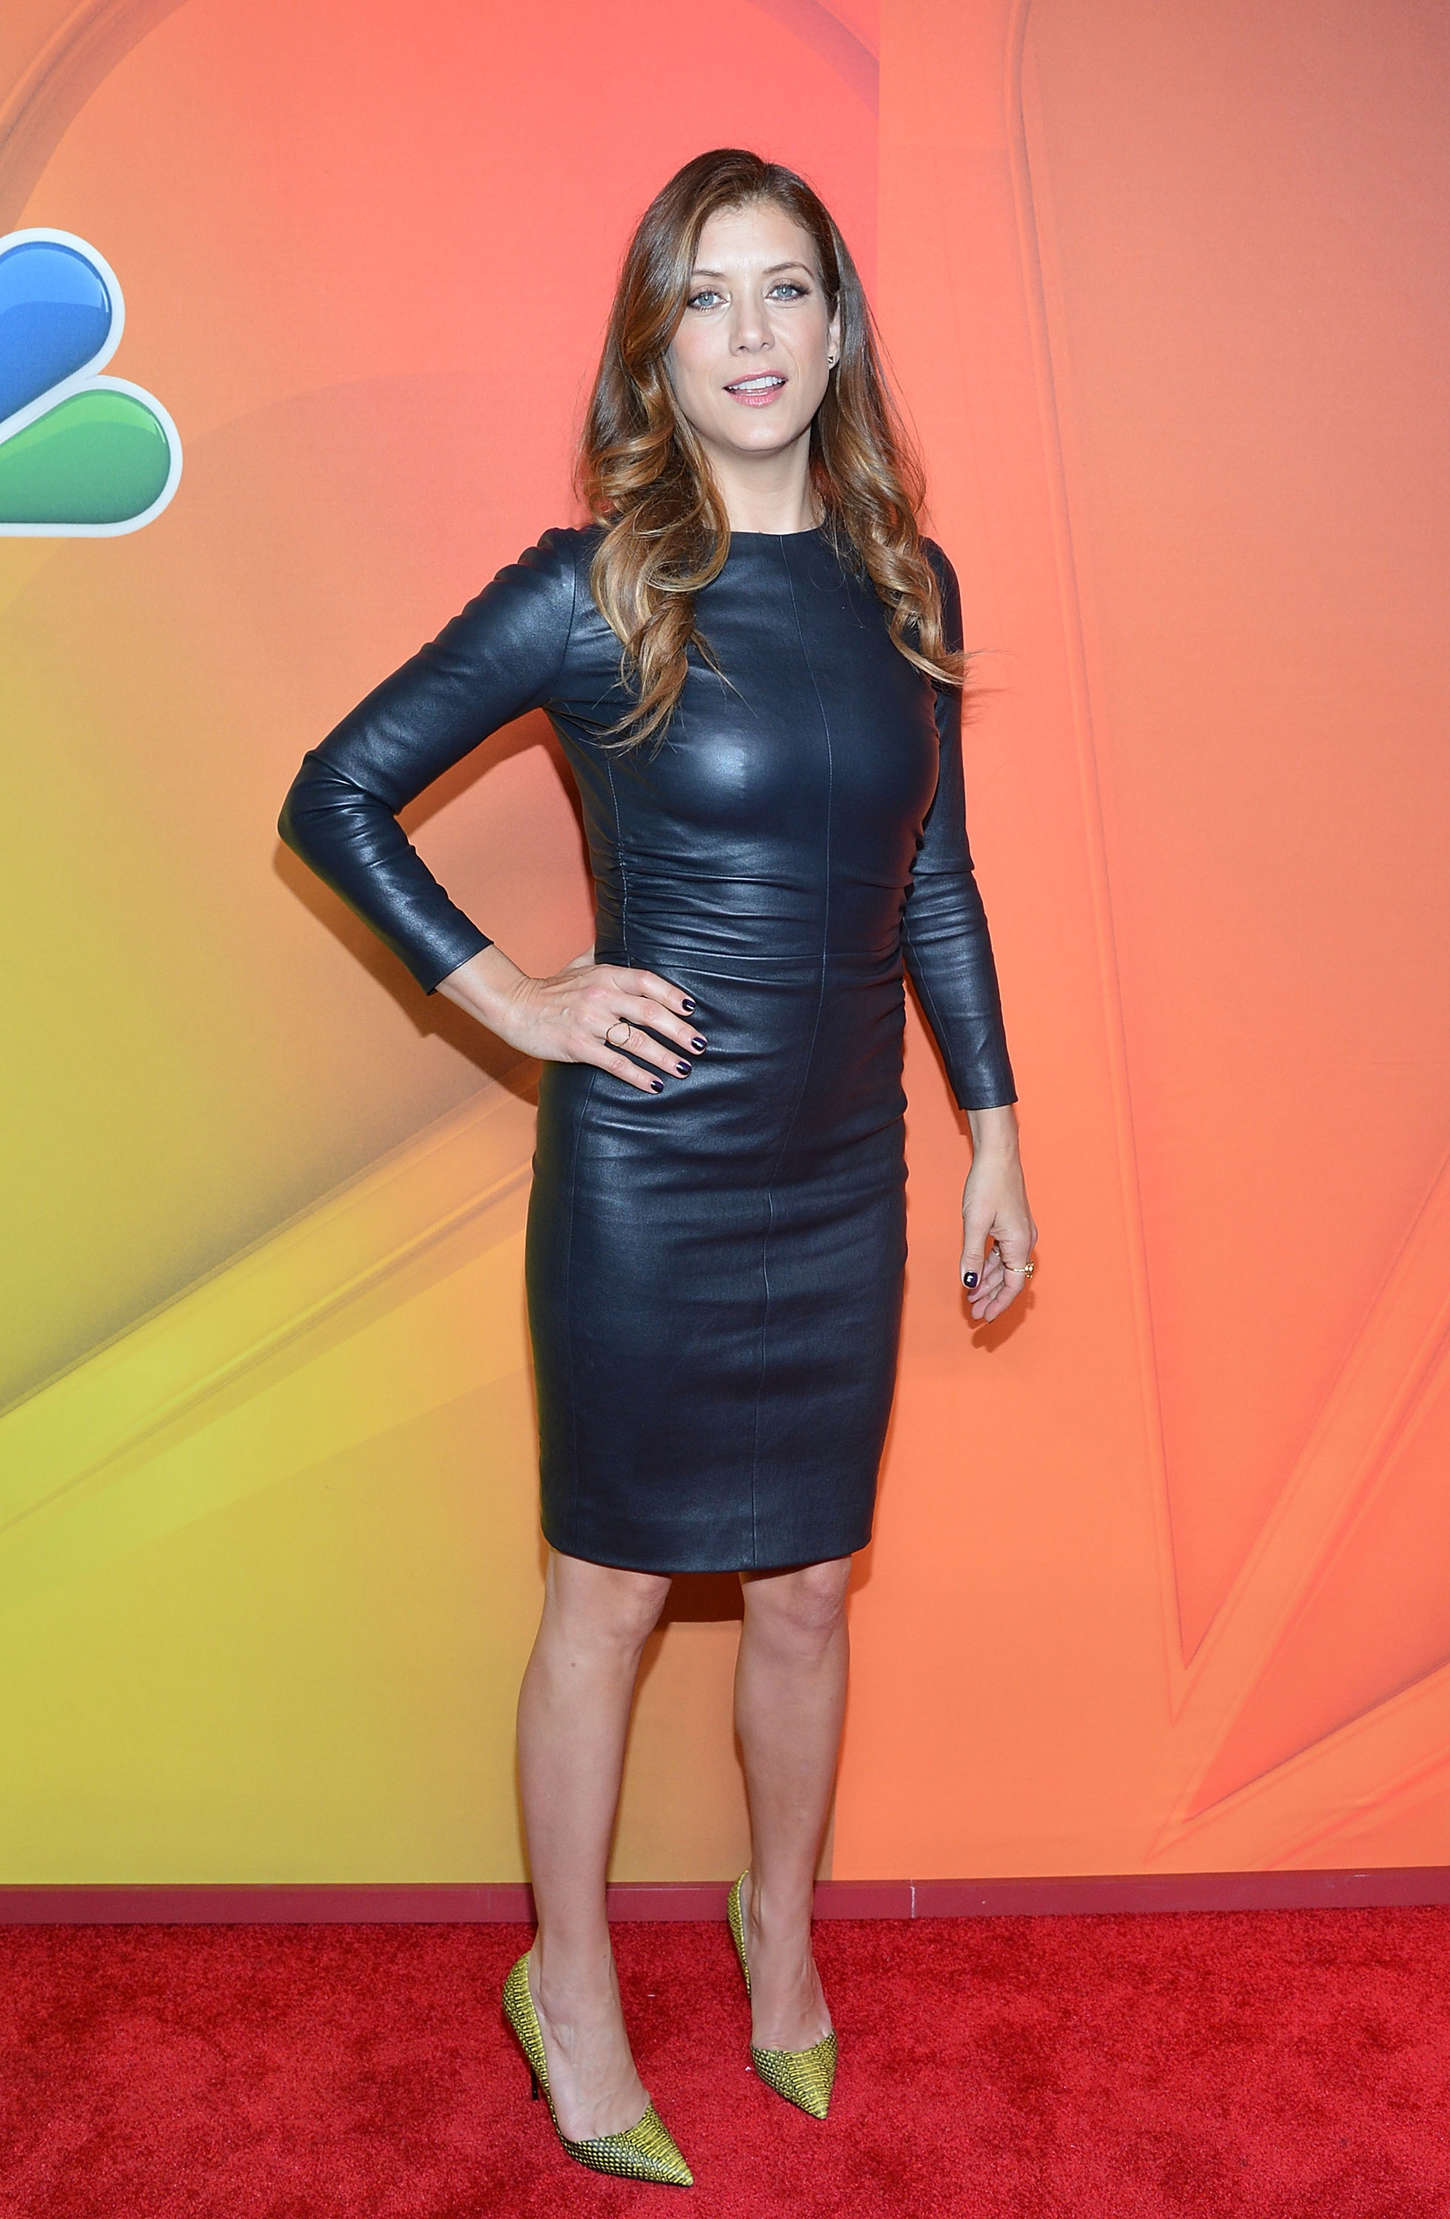 Kate Walsh In Leather Dress 03 Gotceleb